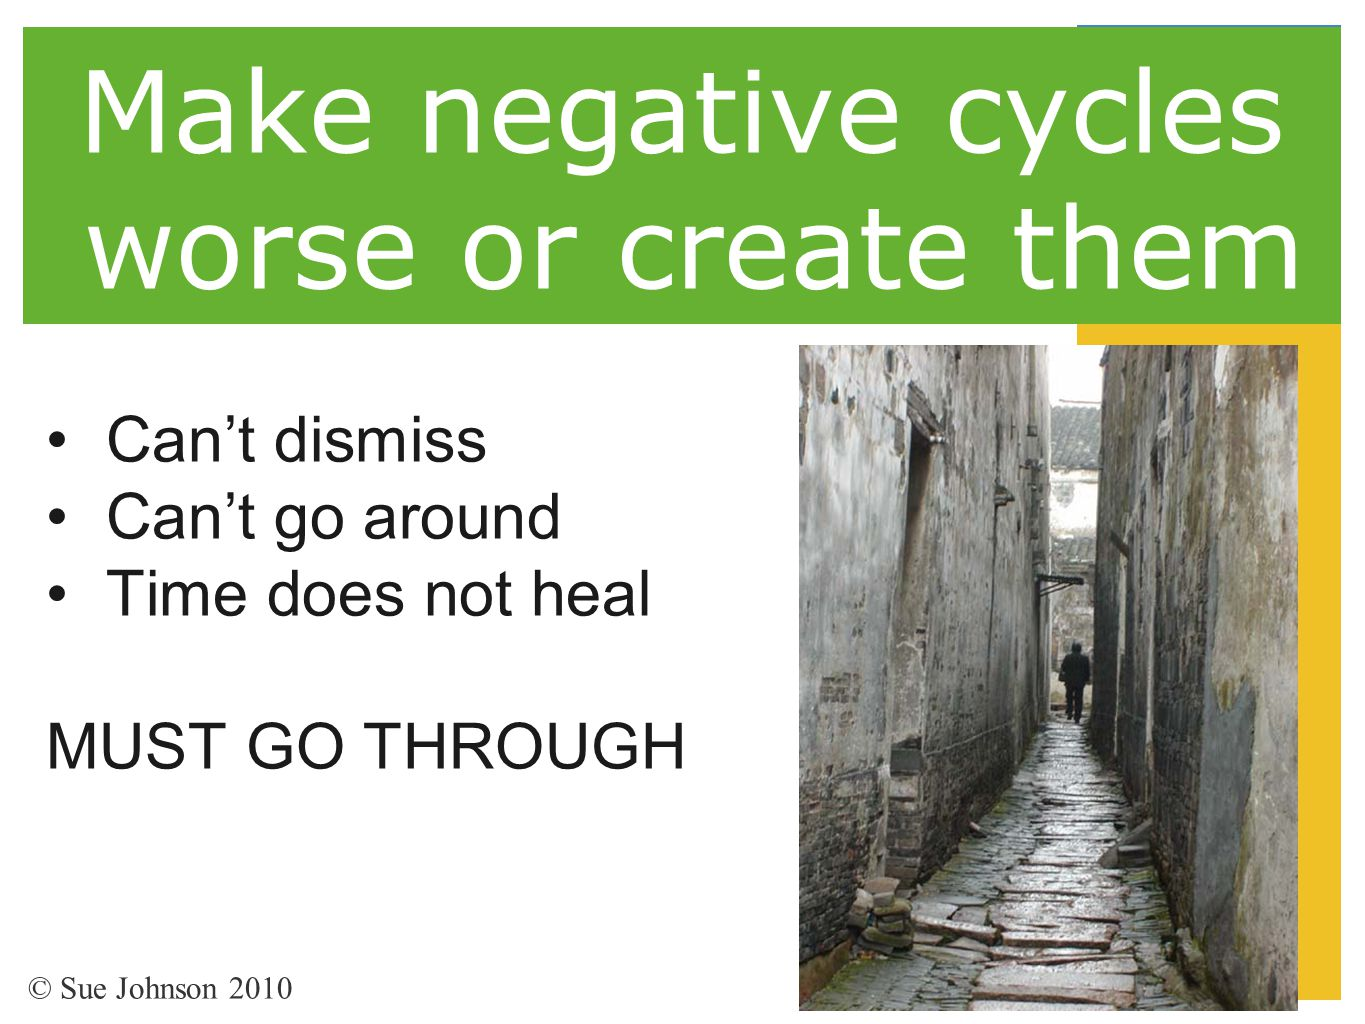 Make negative cycles worse or create them